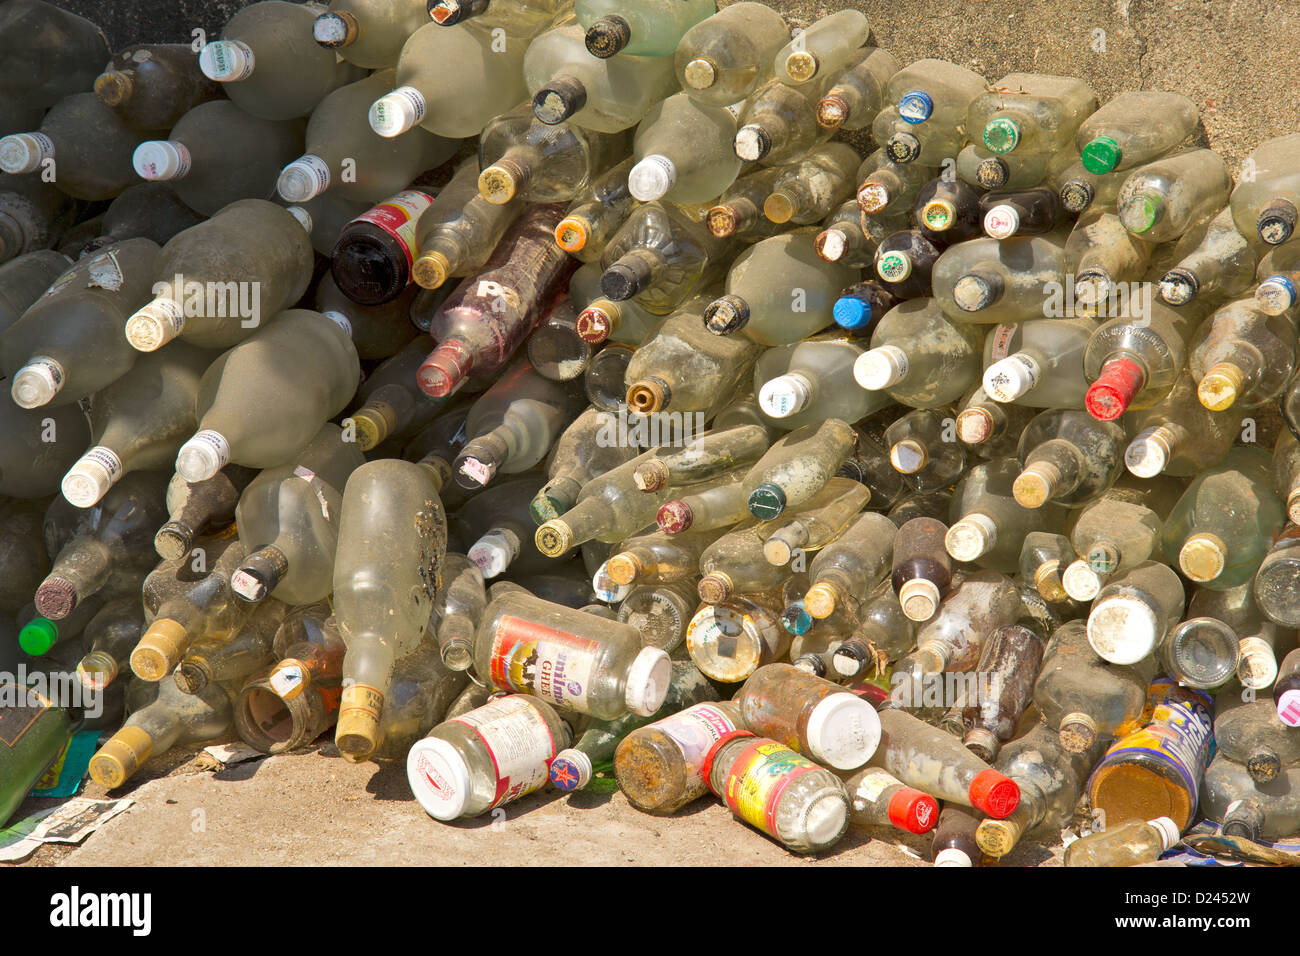 PLASTIC BOTTLES STORED AGAINST A WALL - Stock Image